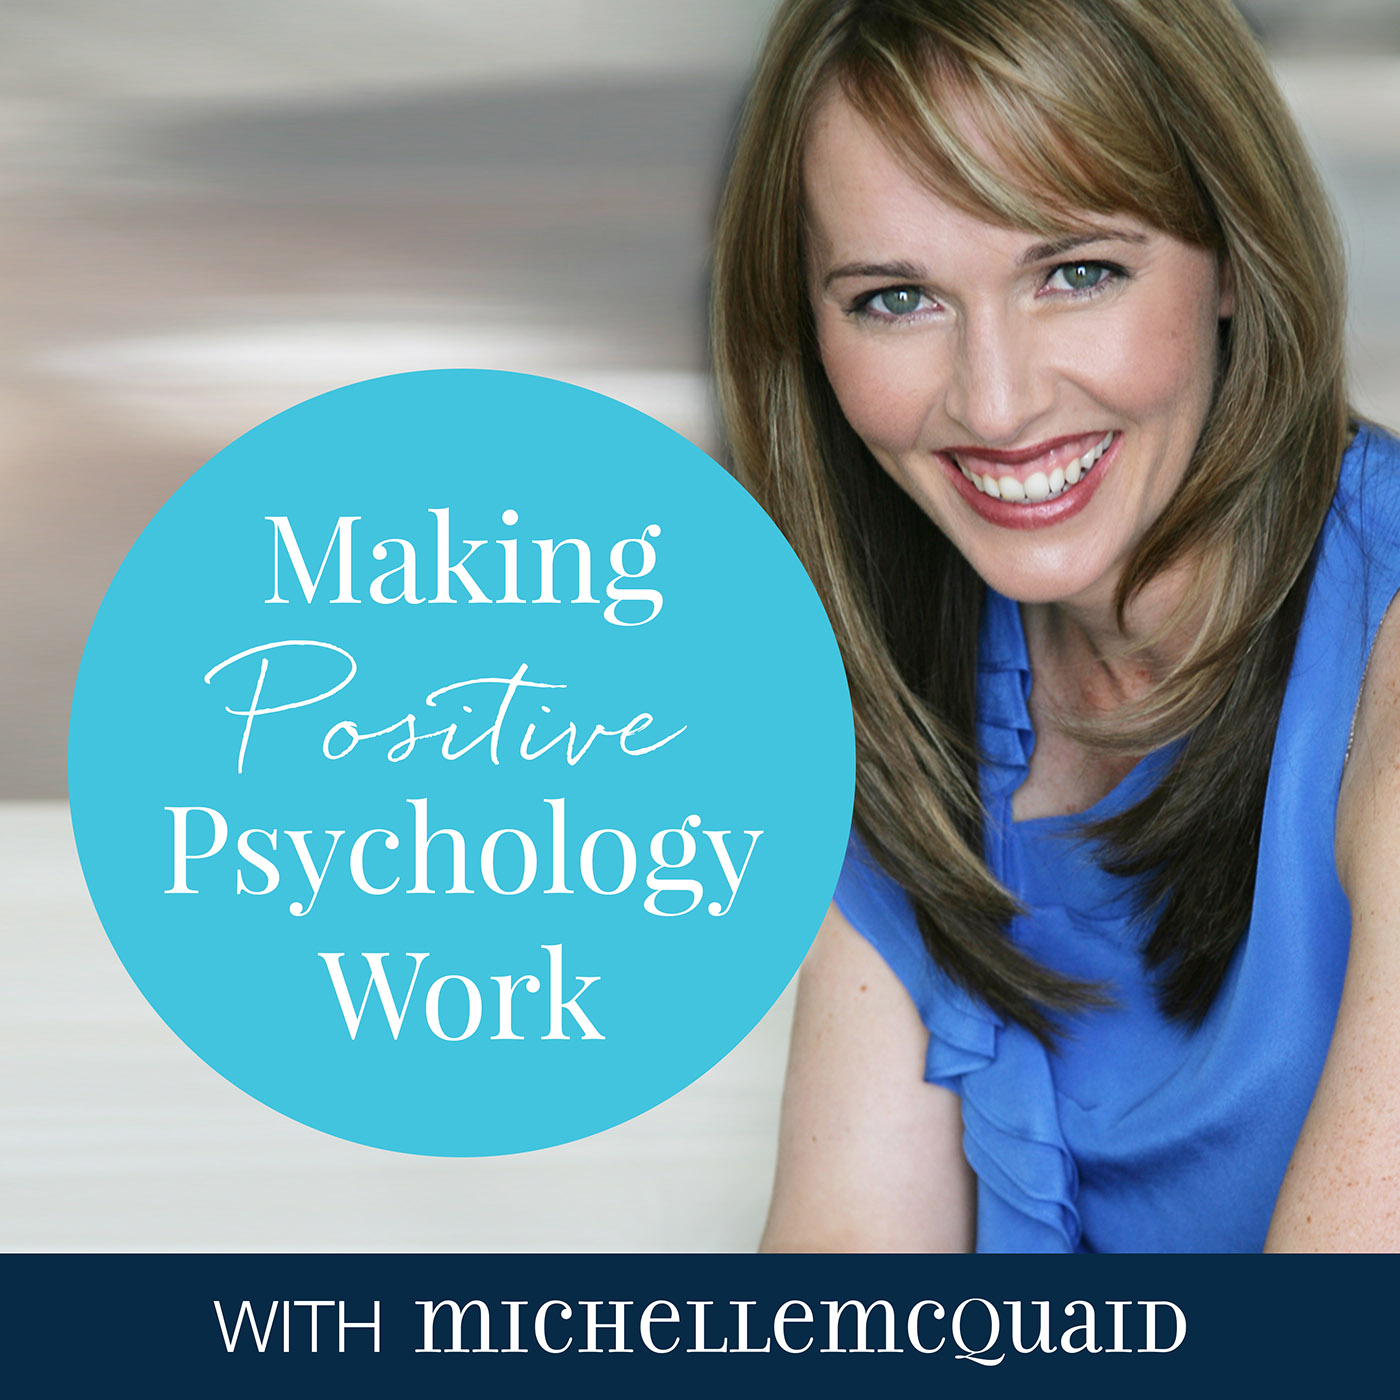 Making Positive Psychology Work Podcast